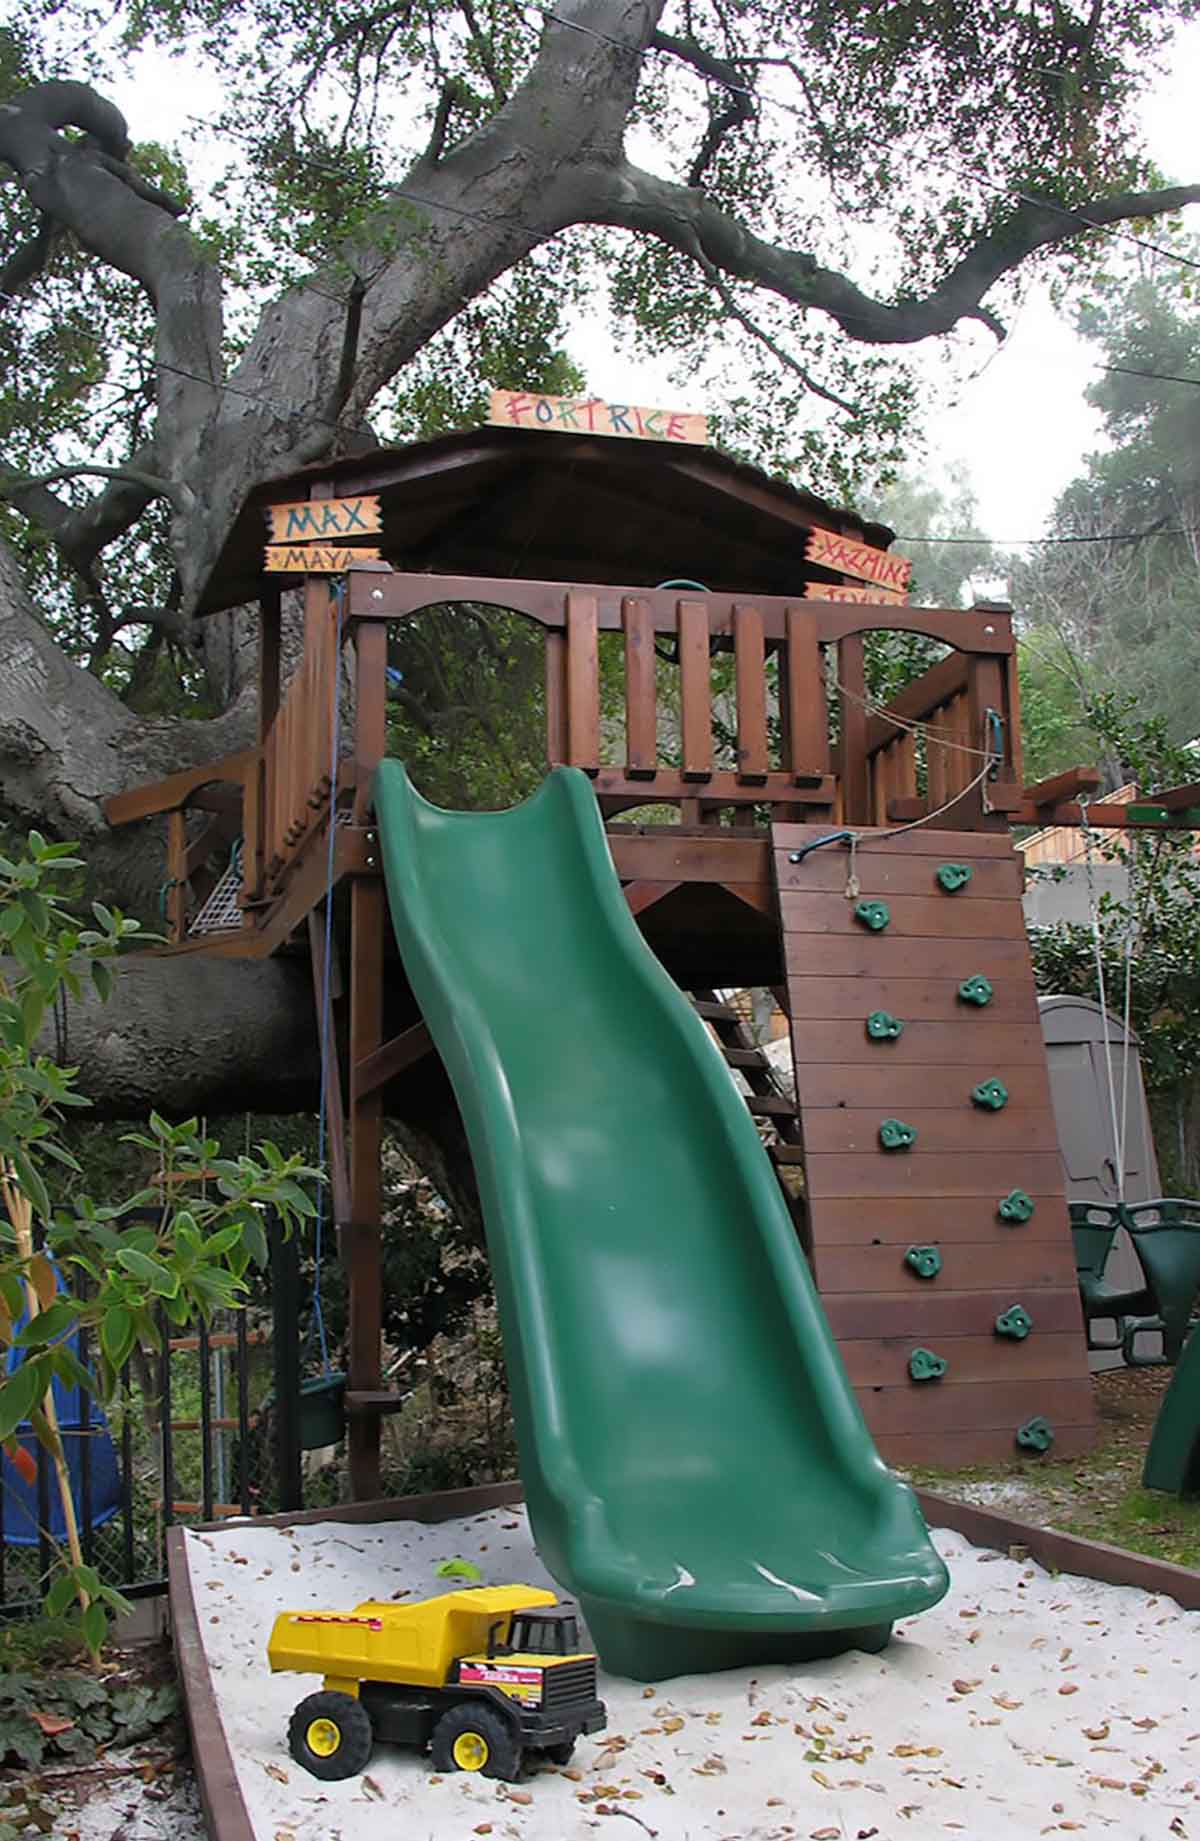 Backyard fort with kids slide